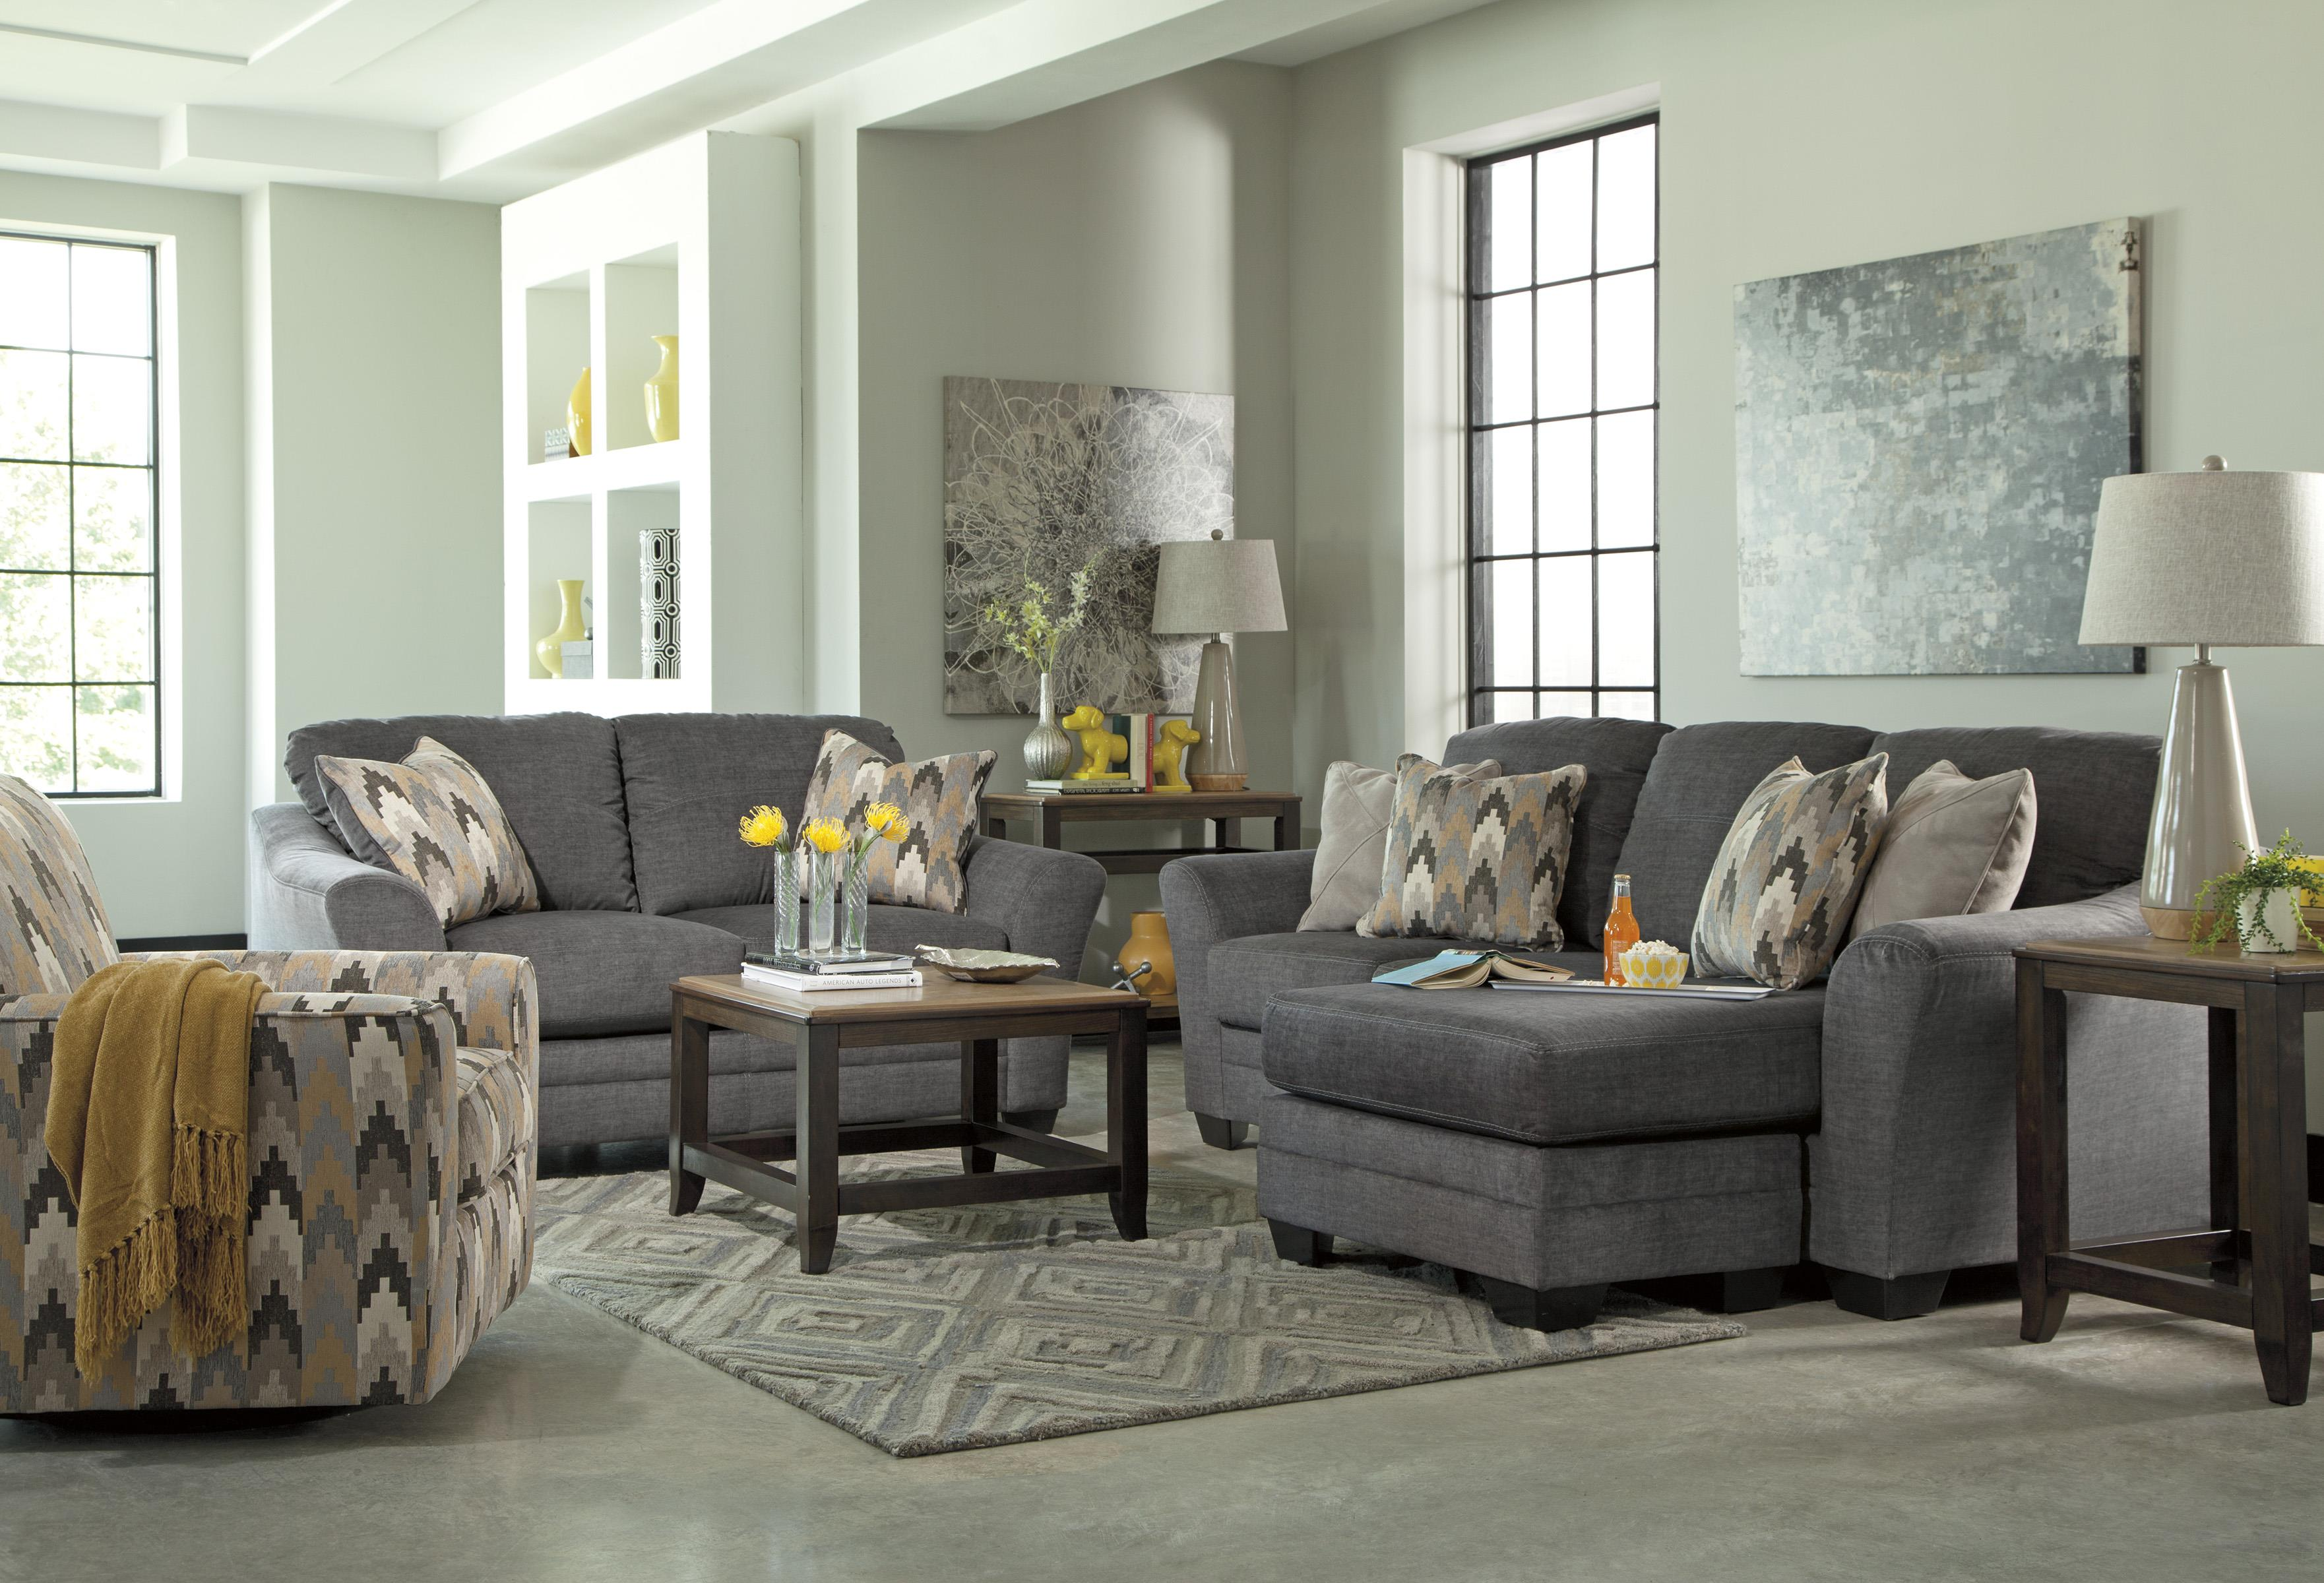 Benchcraft Braxlin Stationary Living Room Group - Item Number: 88502 Living Room Group 3